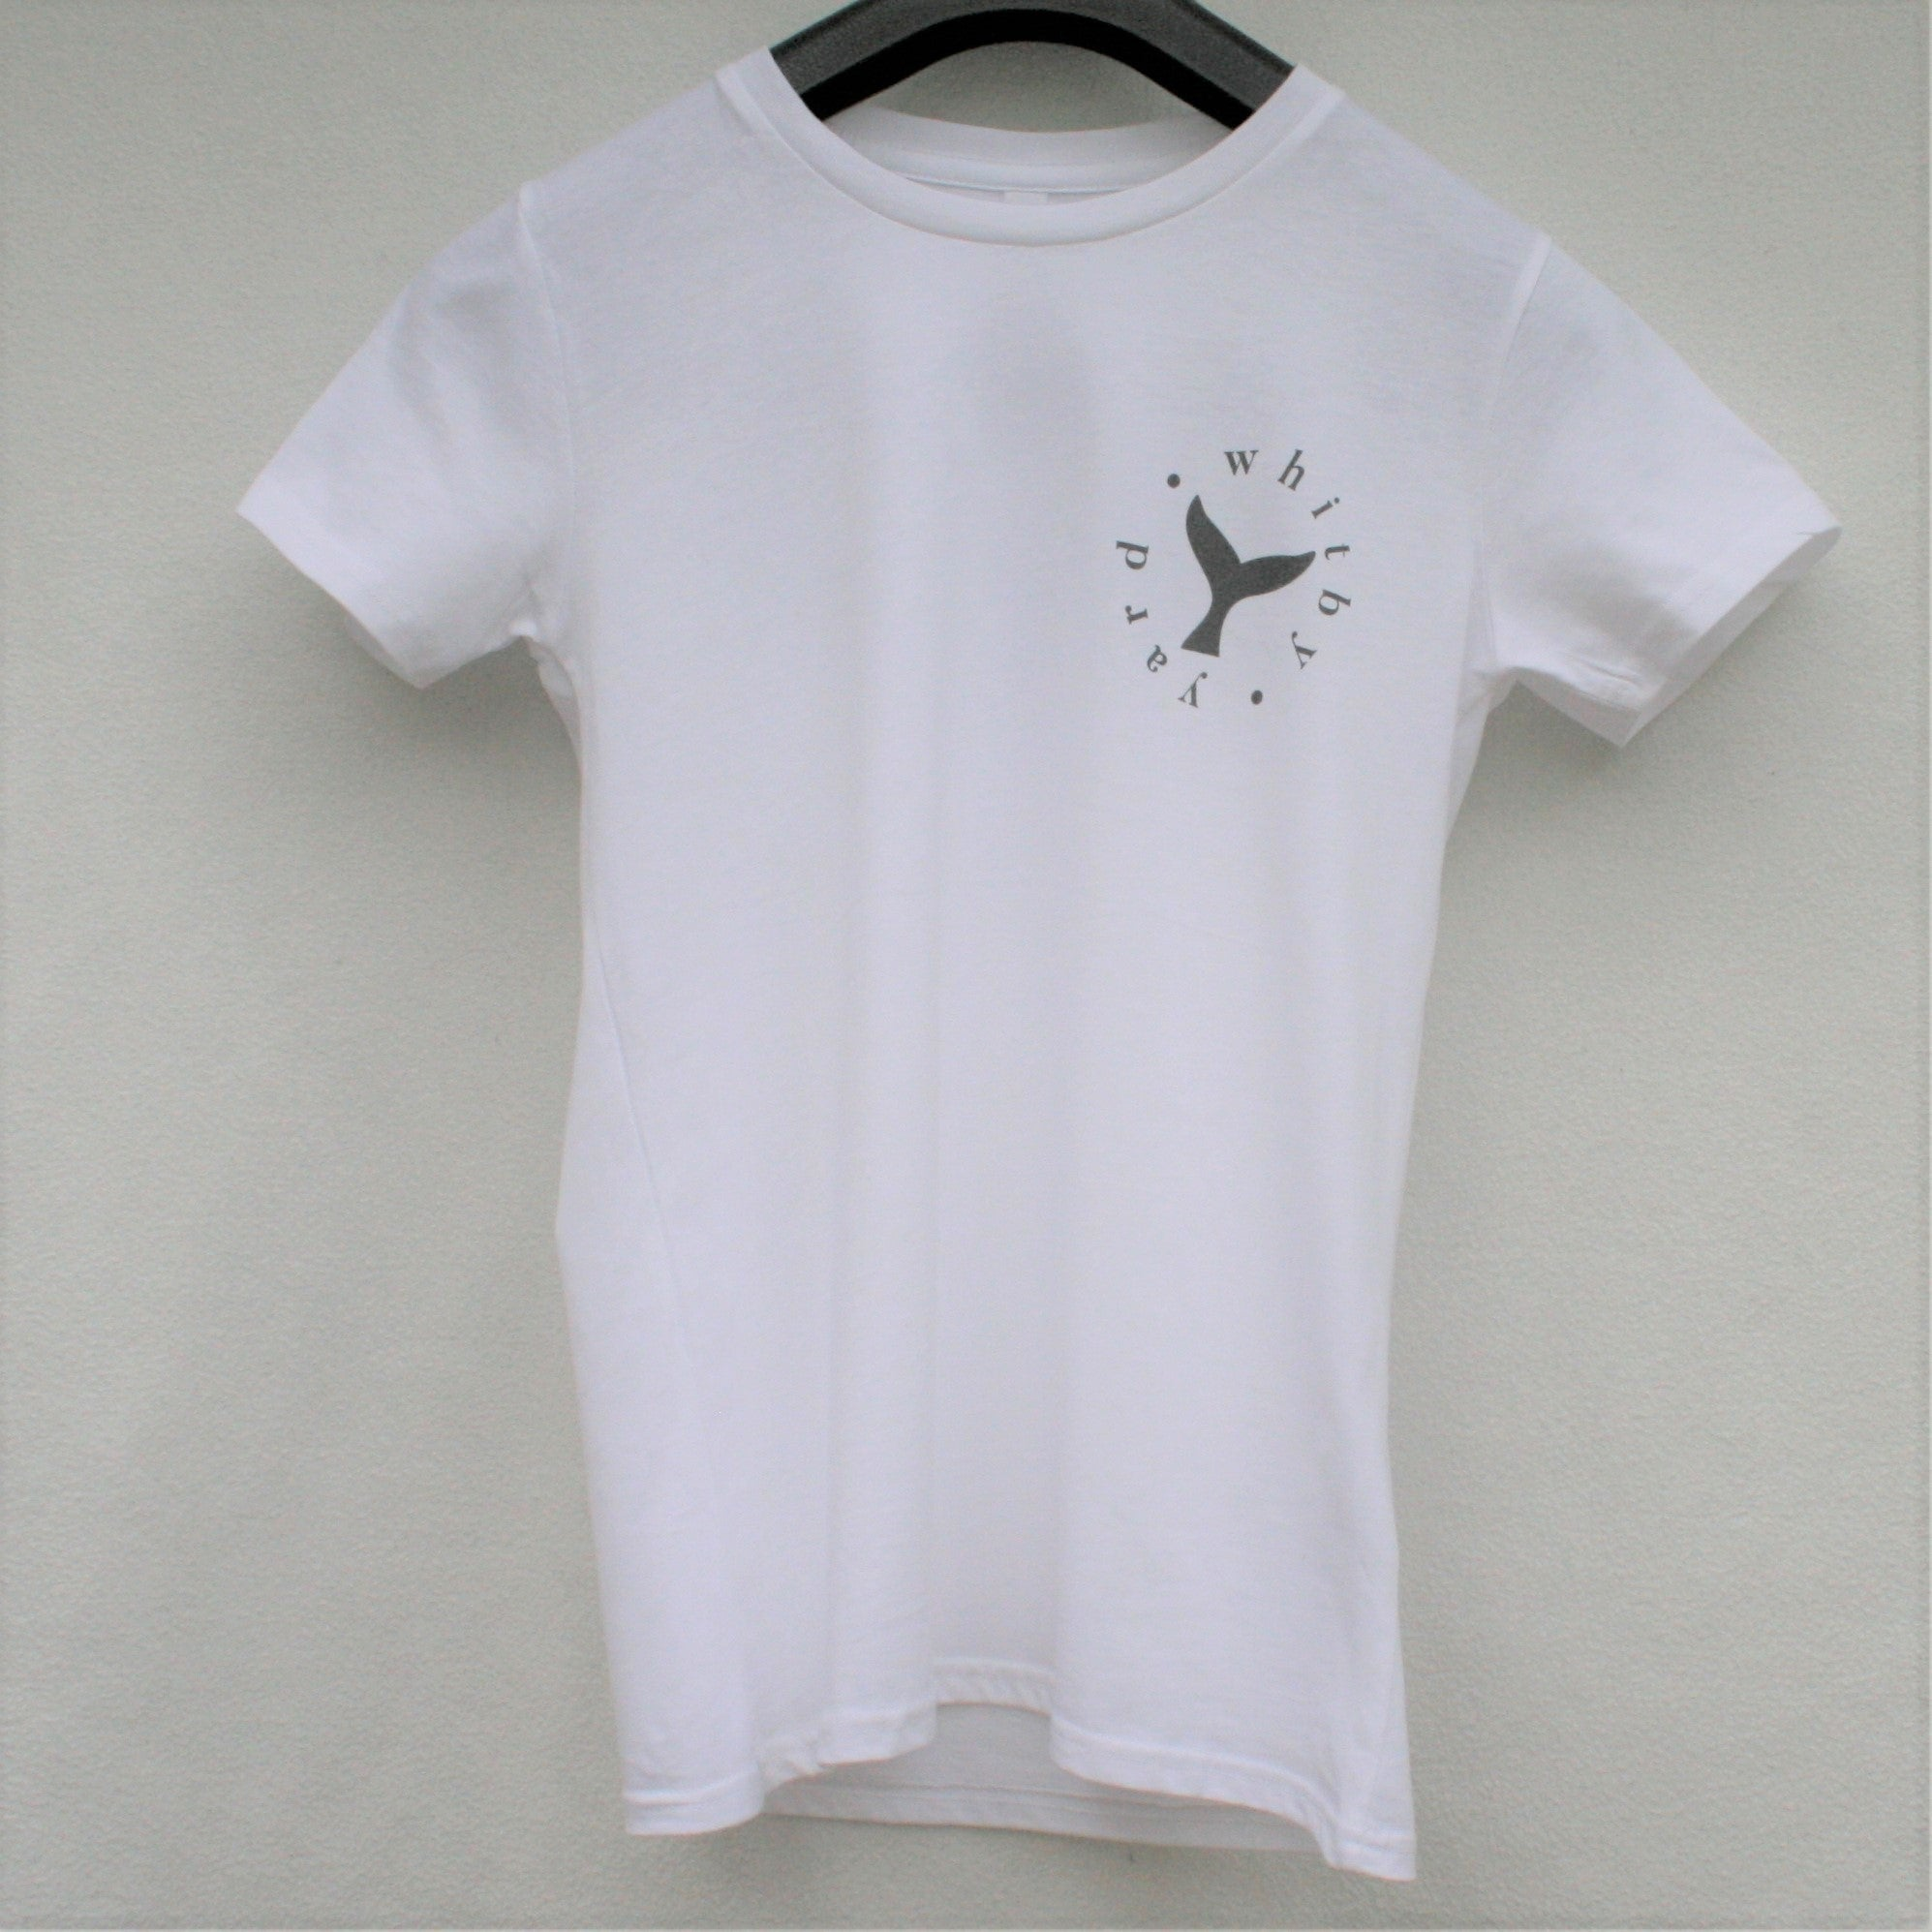 Unisex Whale tail T shirt in White